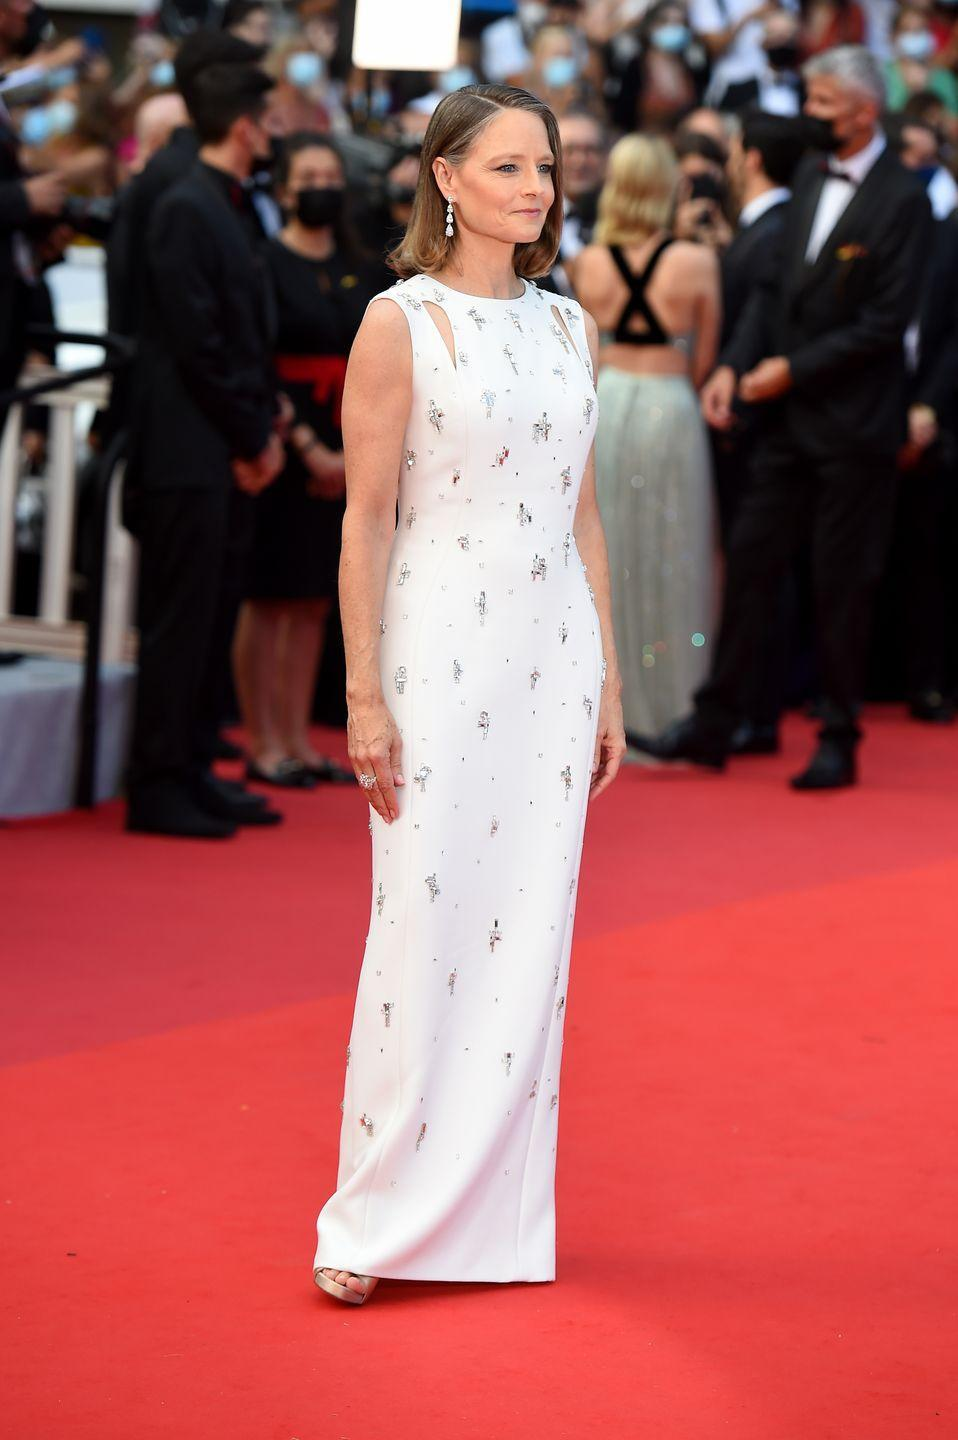 <p>Jodie Foster, recipient of this year's prestigious Lifetime Achievement Award, arrived wearing a column dress covered in delicate embellishments. </p>